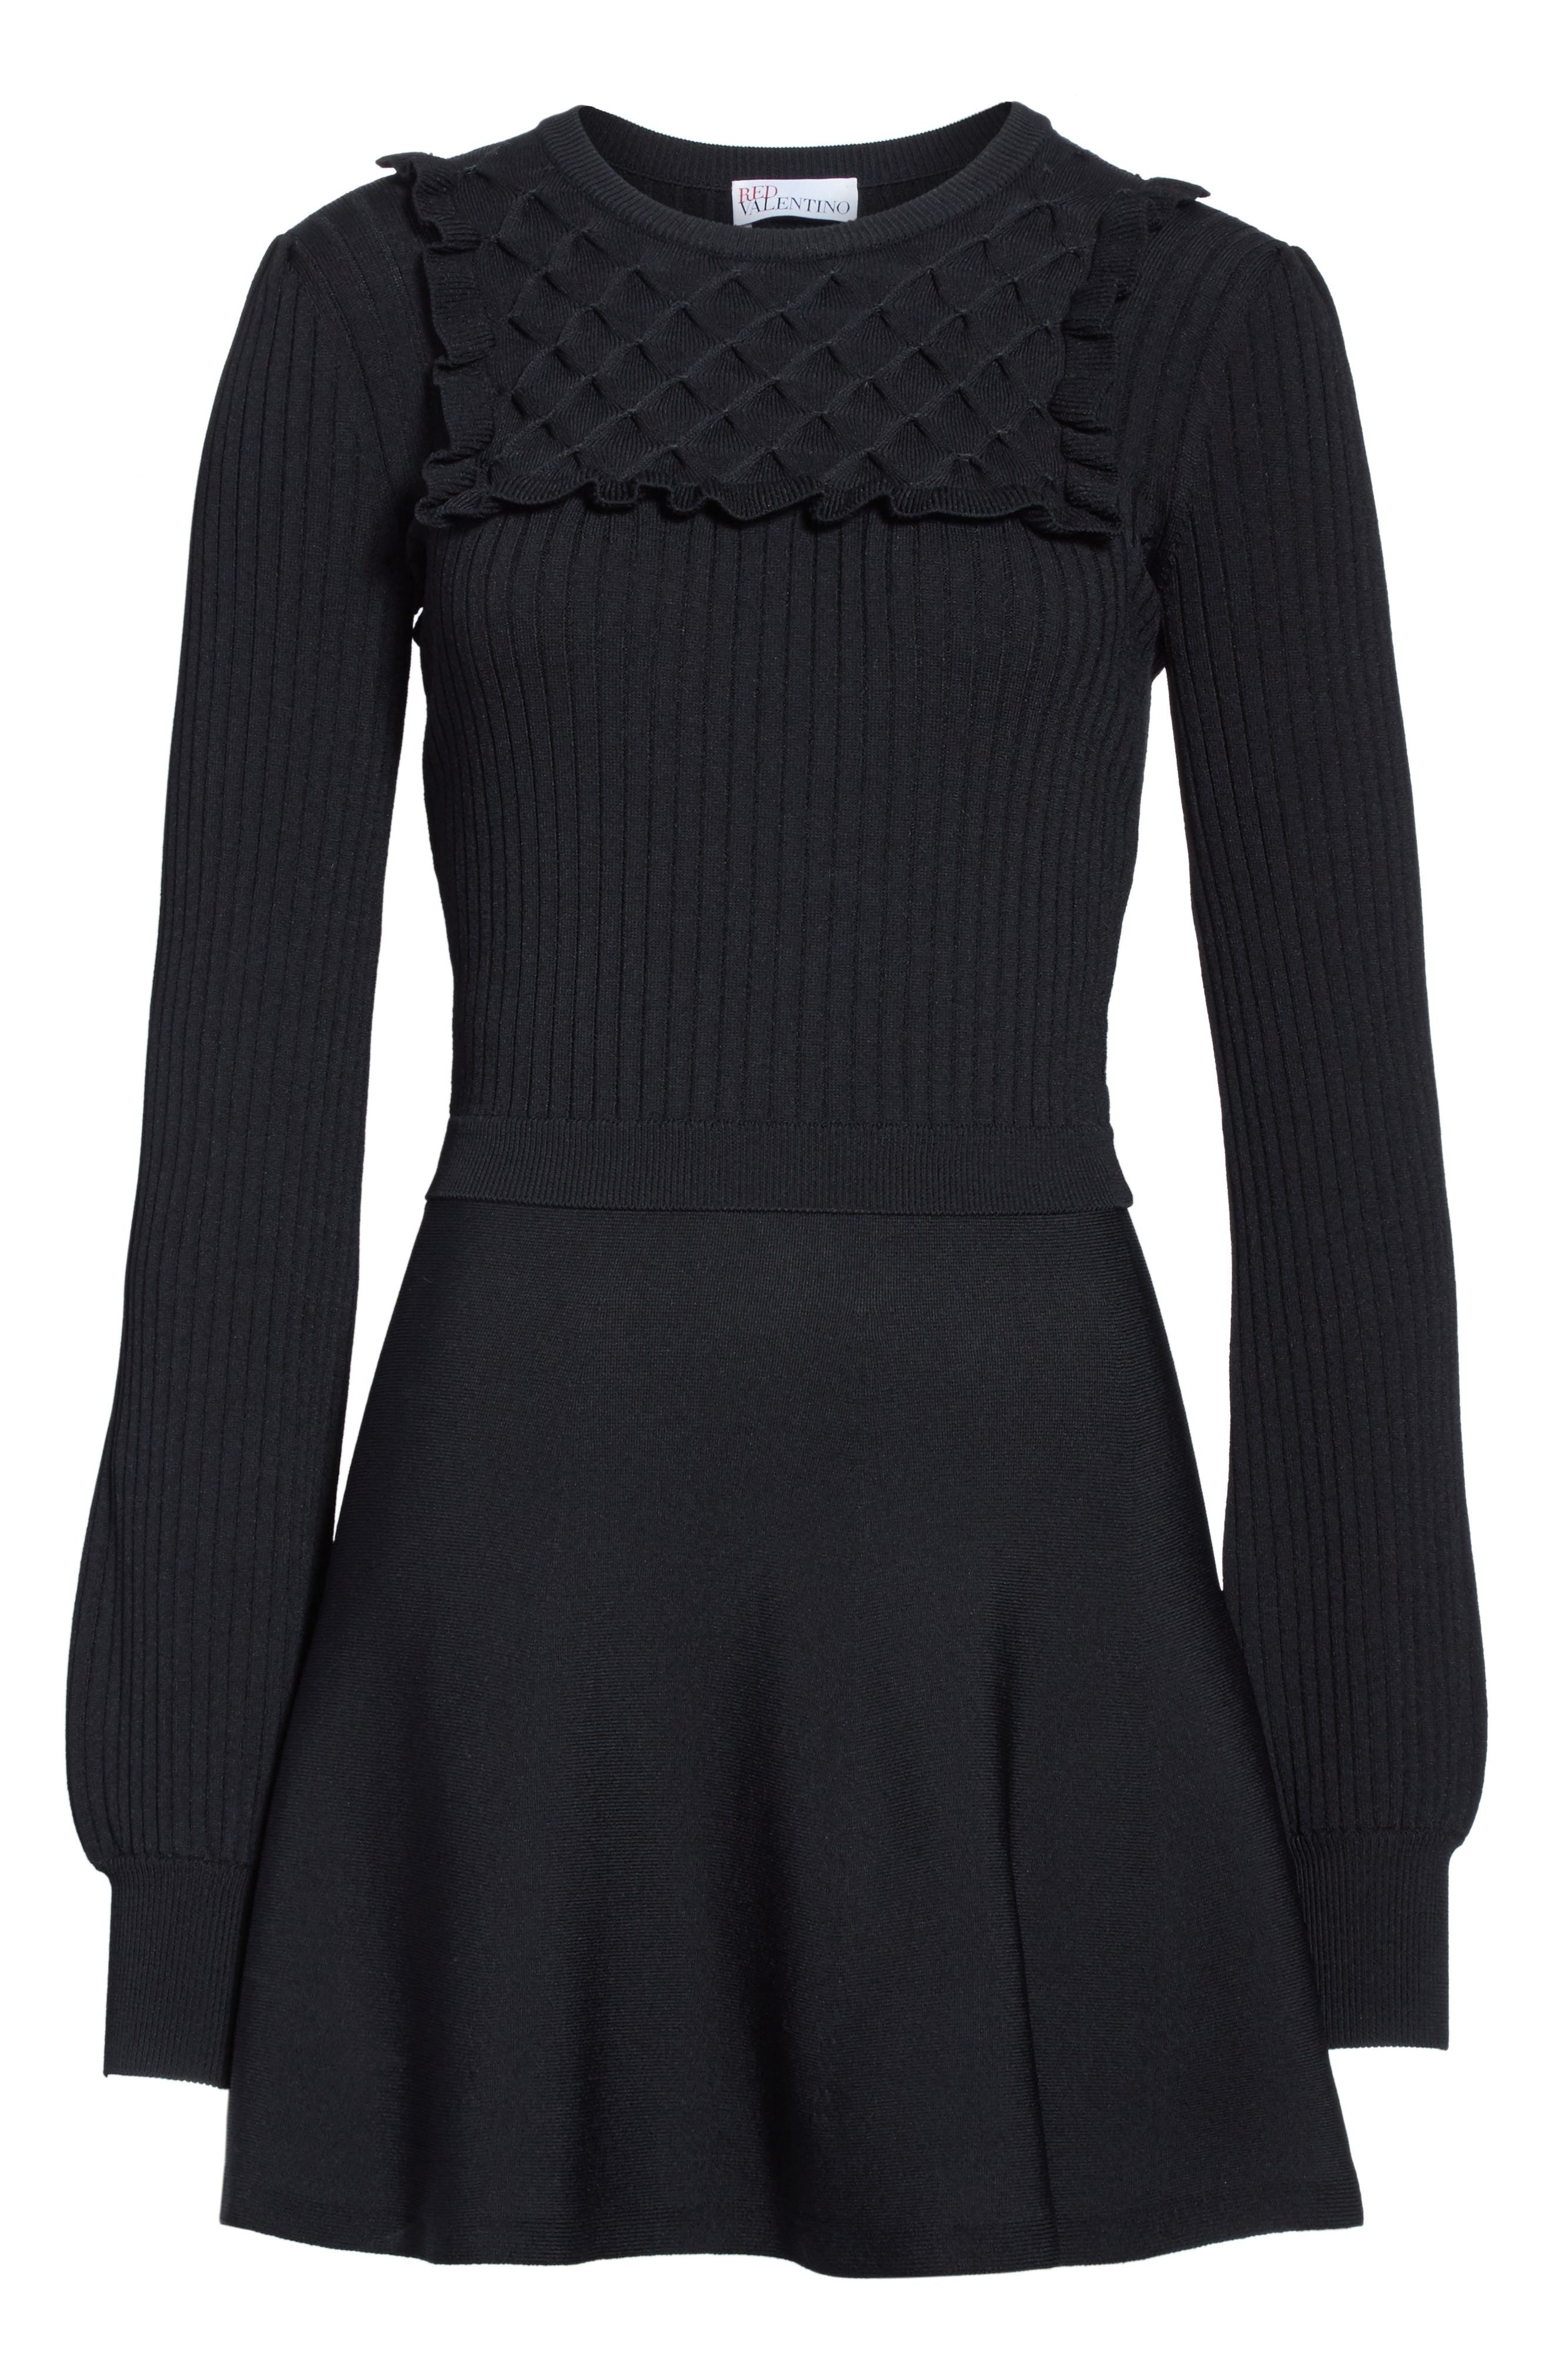 Hand Stitched Stretch Knit Dress,                             Alternate thumbnail 6, color,                             Nero